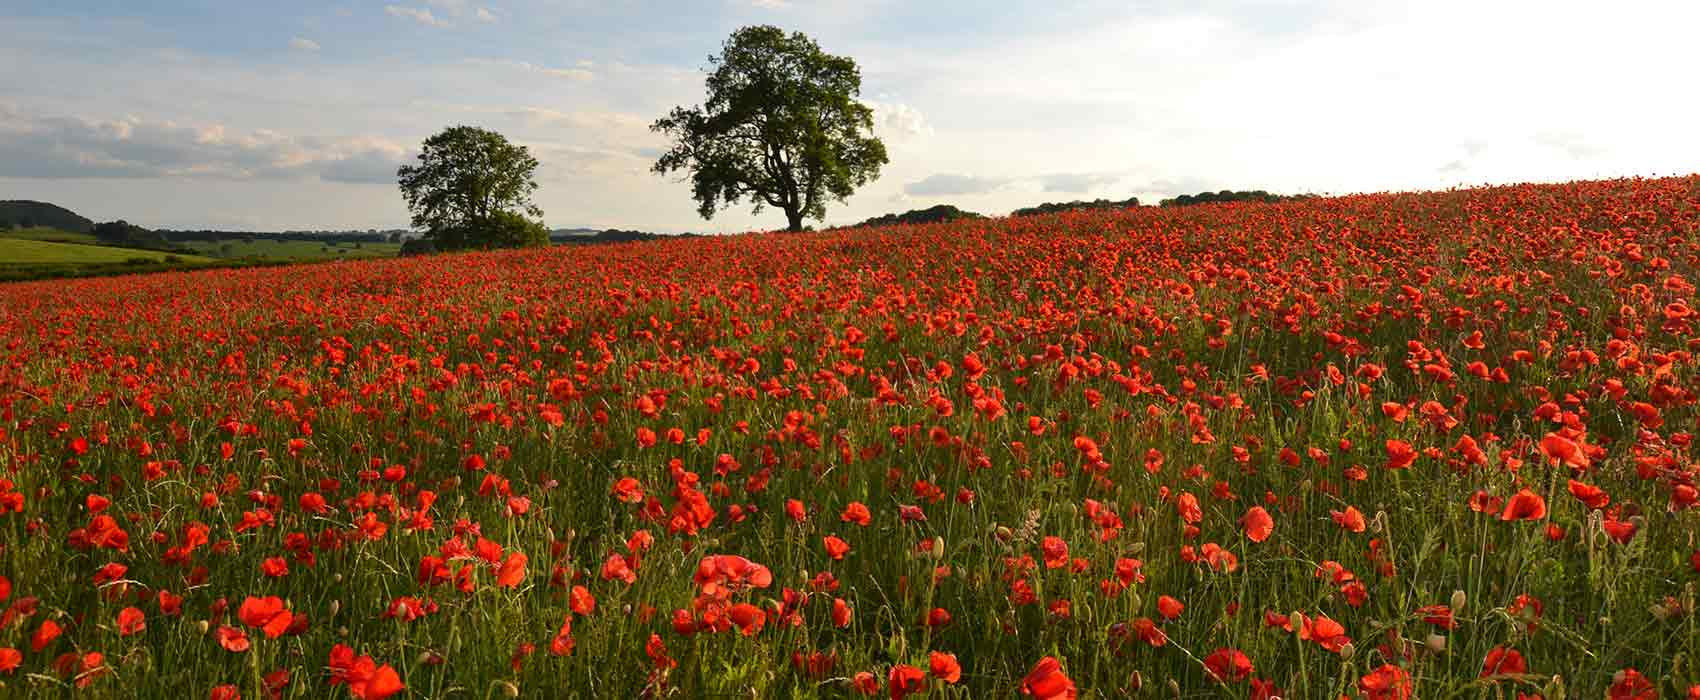 Baslow field of poppies with trees on horizon towards Chatsworth House